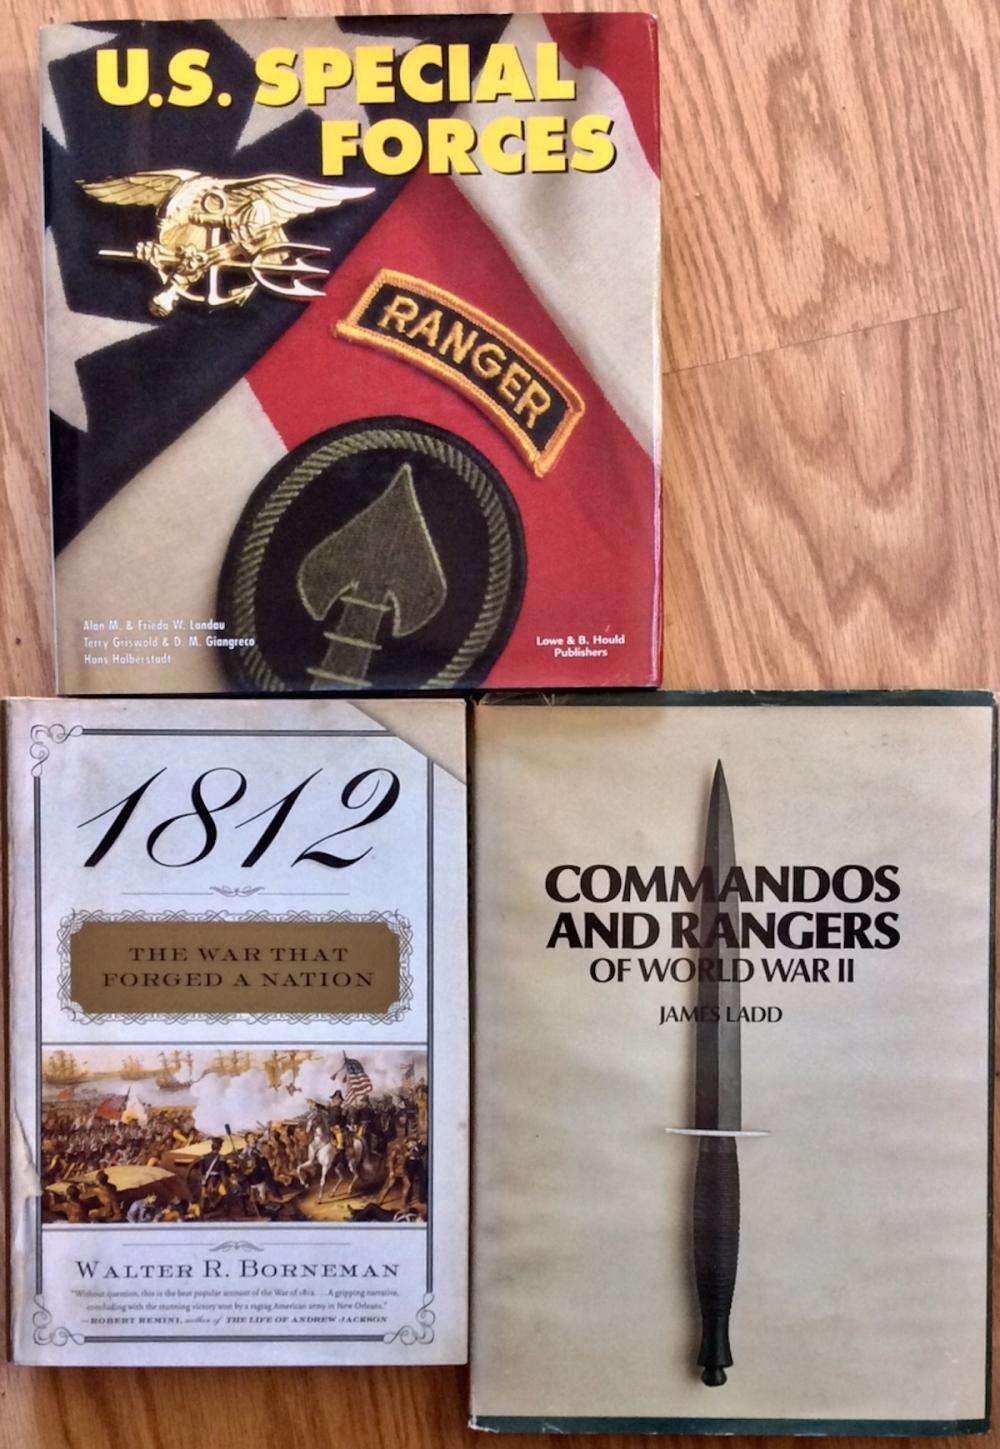 """1812: The War That Forged A Nation"", ""US Special Forces"" & Commandos & Rangers Of WWII"" Collectible (3) book Hardcover Lot Of Military History. All In DJs"